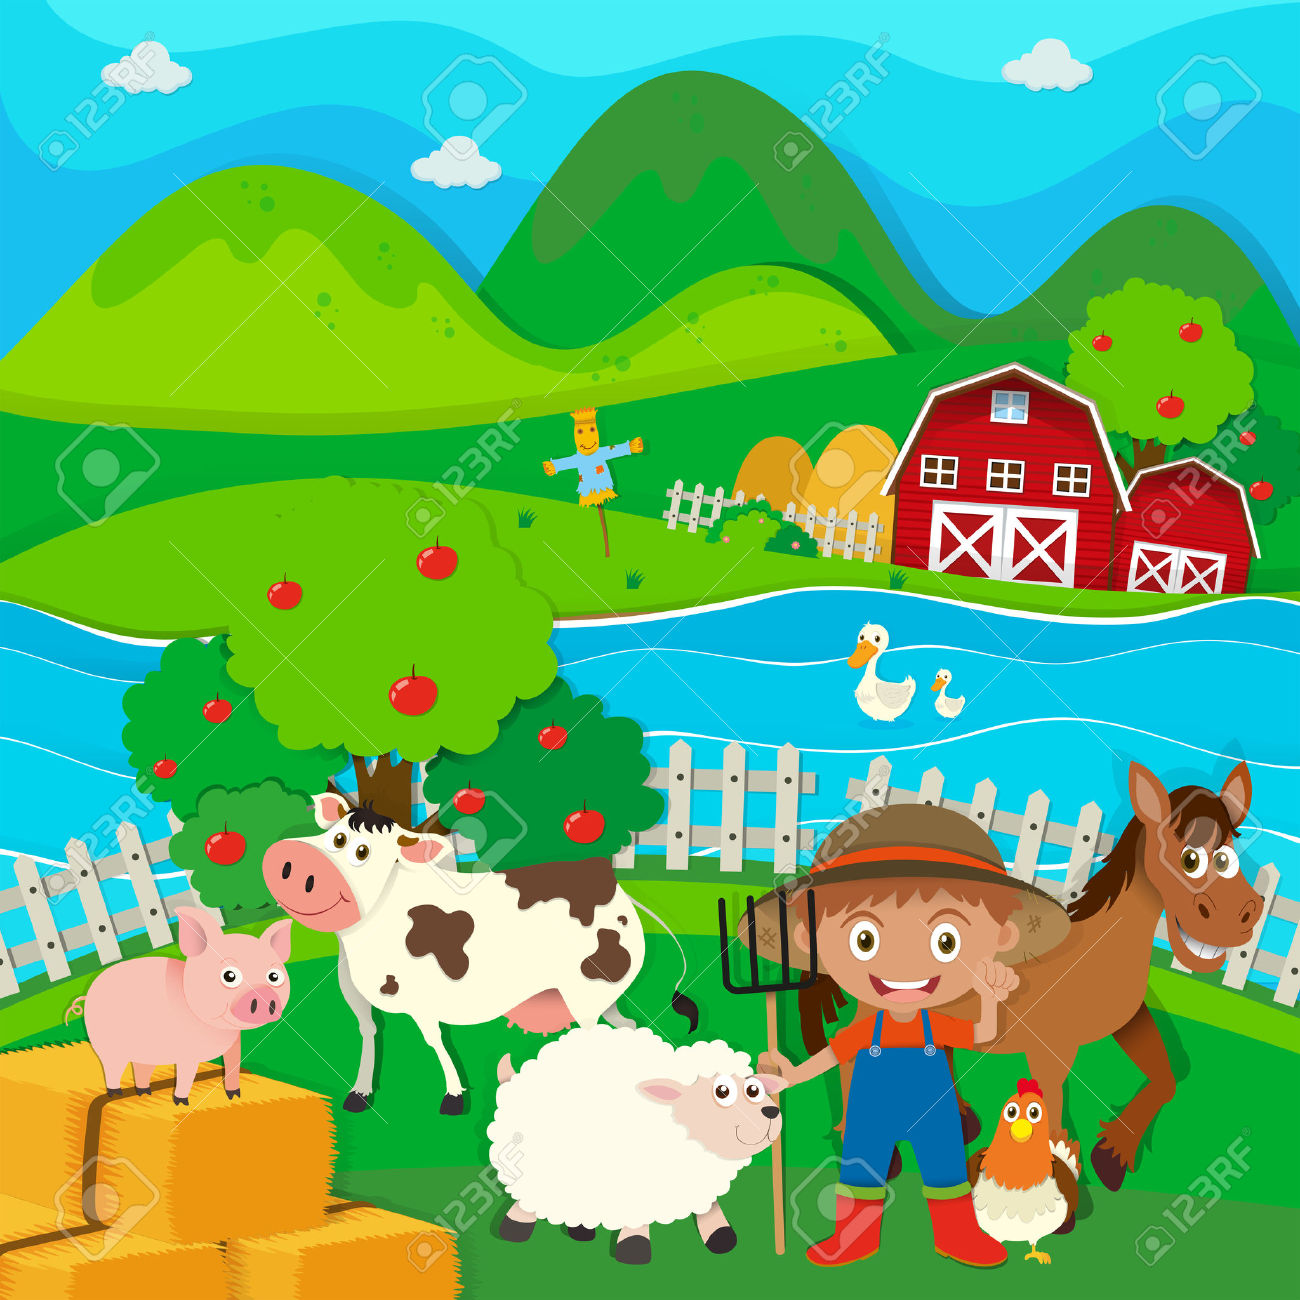 Farmer And Farm Animals On The Farm Illustration Royalty Free.